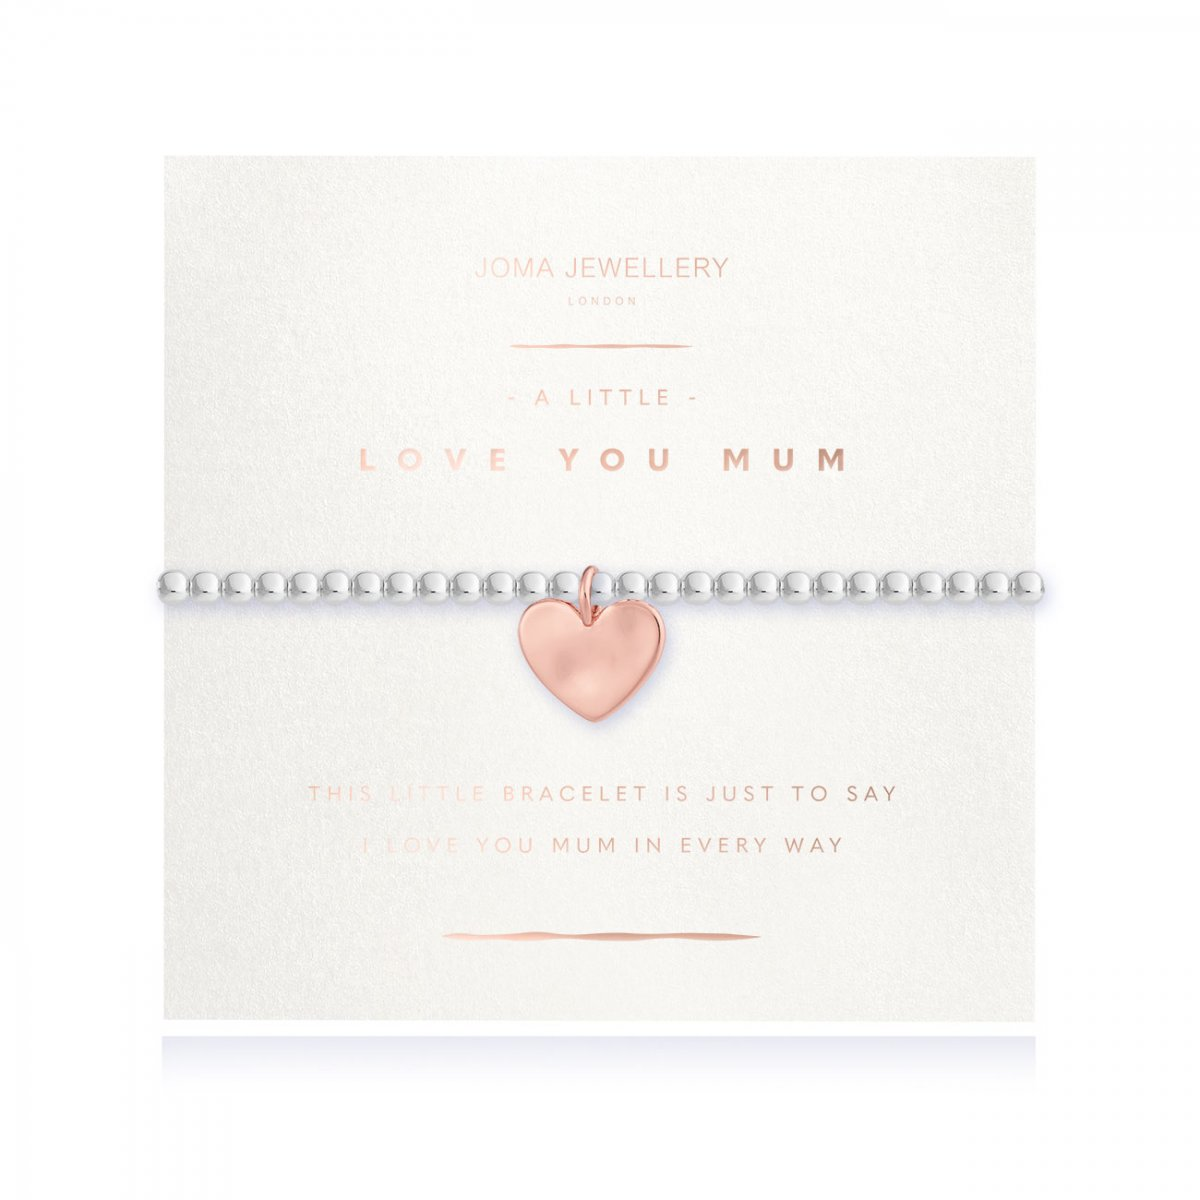 This beautiful silver plated stretch bracelet with rose gold plated heart charm comes presented on a sentiment card which reads:  'this little bracelet is just to say I love you Mum in every way'  Beautifully packaged in it's own Joma Jewellery envelope and gifting card, this will make a gorgeous gift idea for your mum's birthday, Mother's Day or just because.